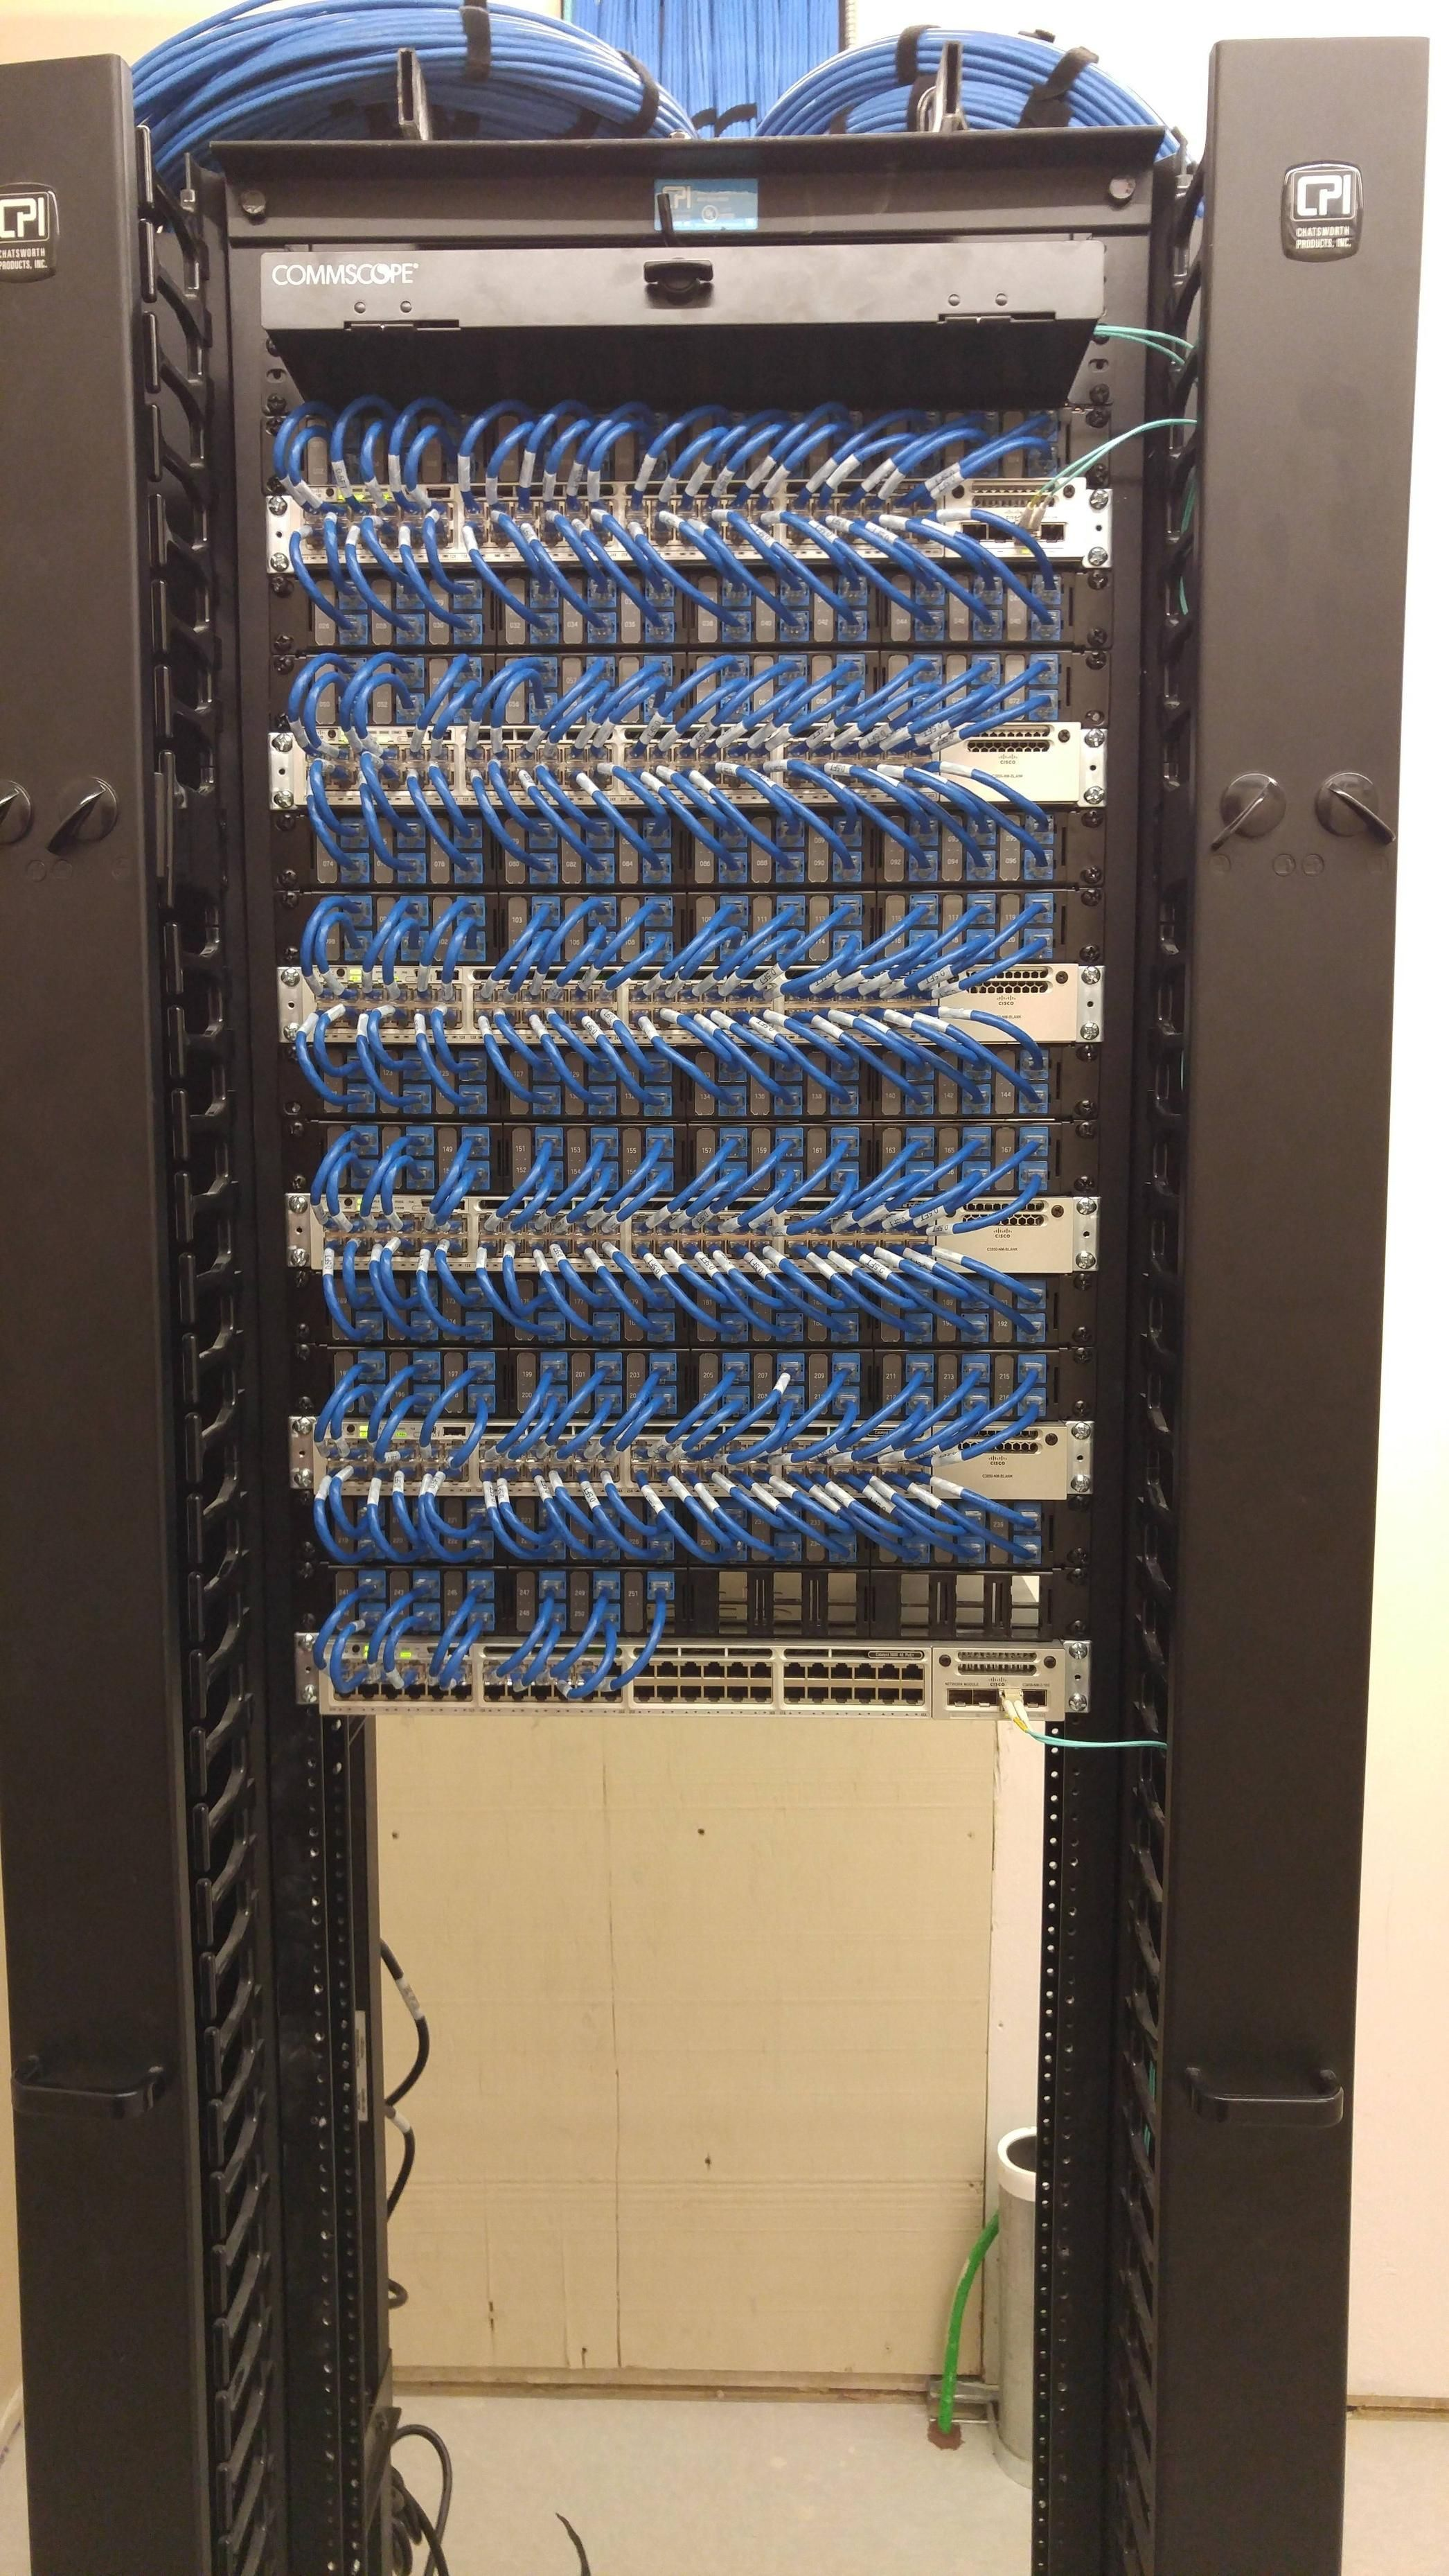 hight resolution of new idf closets network rack it network network cable server cabinet structured